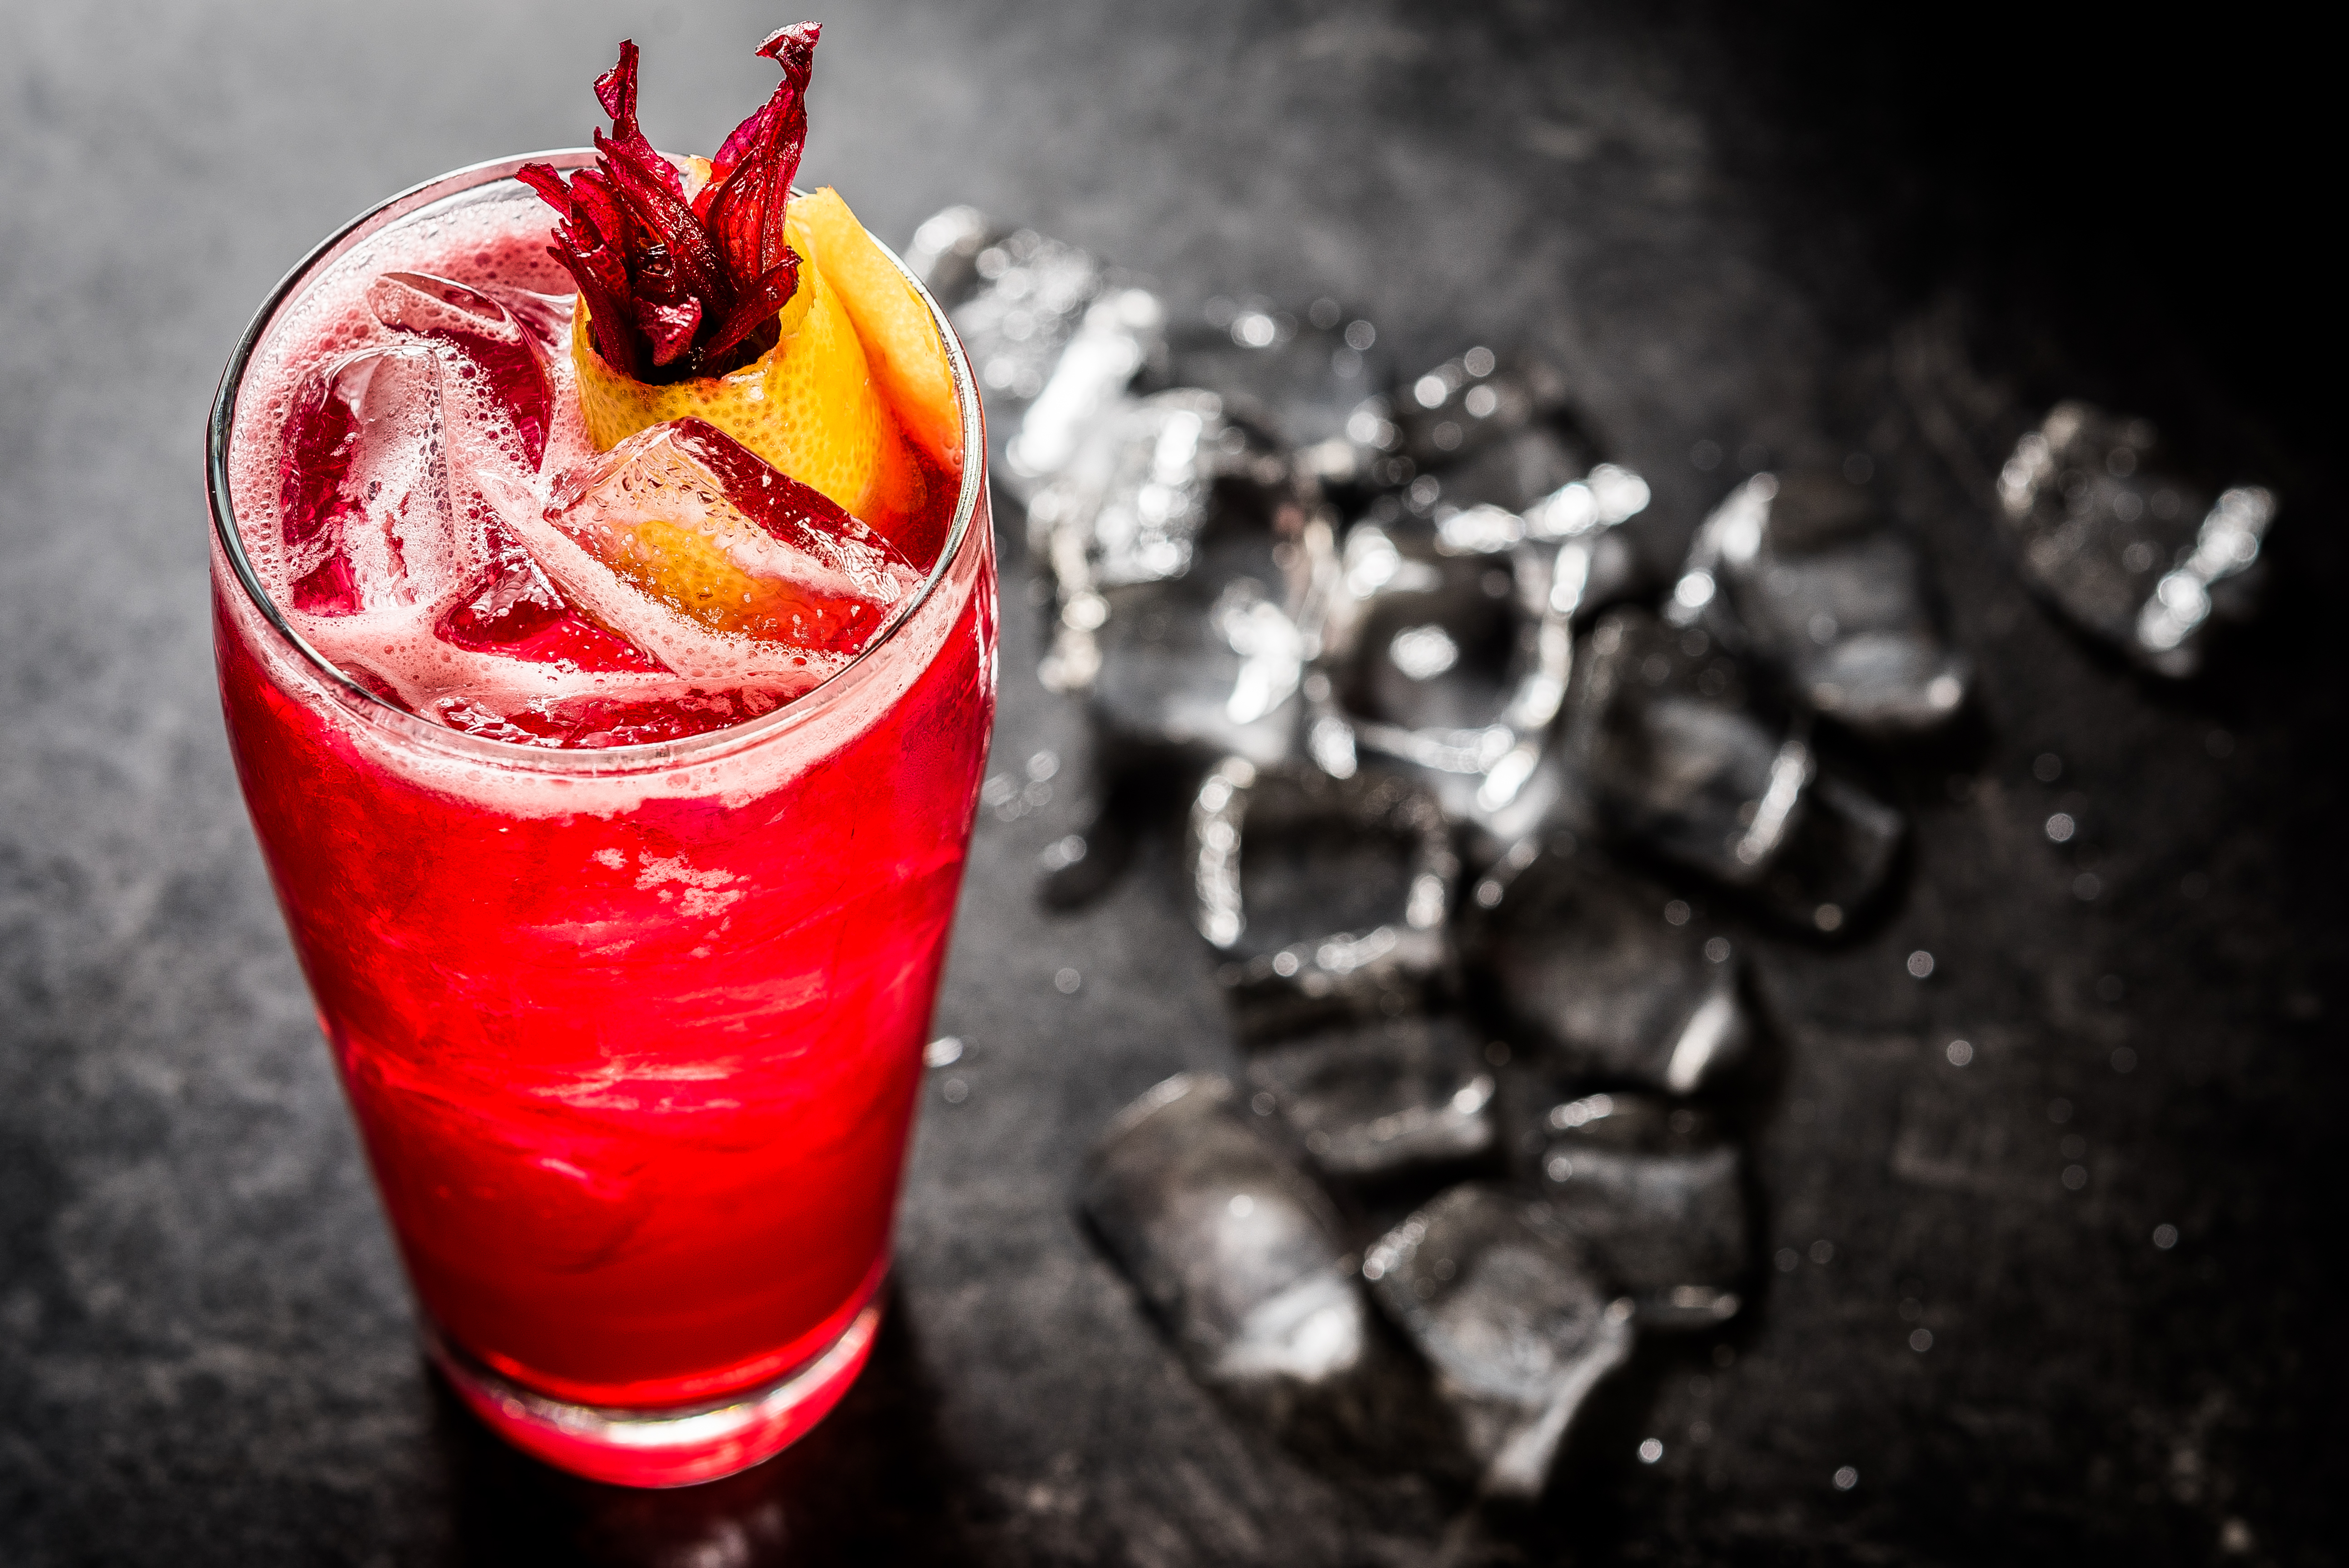 The Cielo Rojo: Citrus-infused vodka, hibiscus, ginger beer and lemon (Image: Rey Lopez)